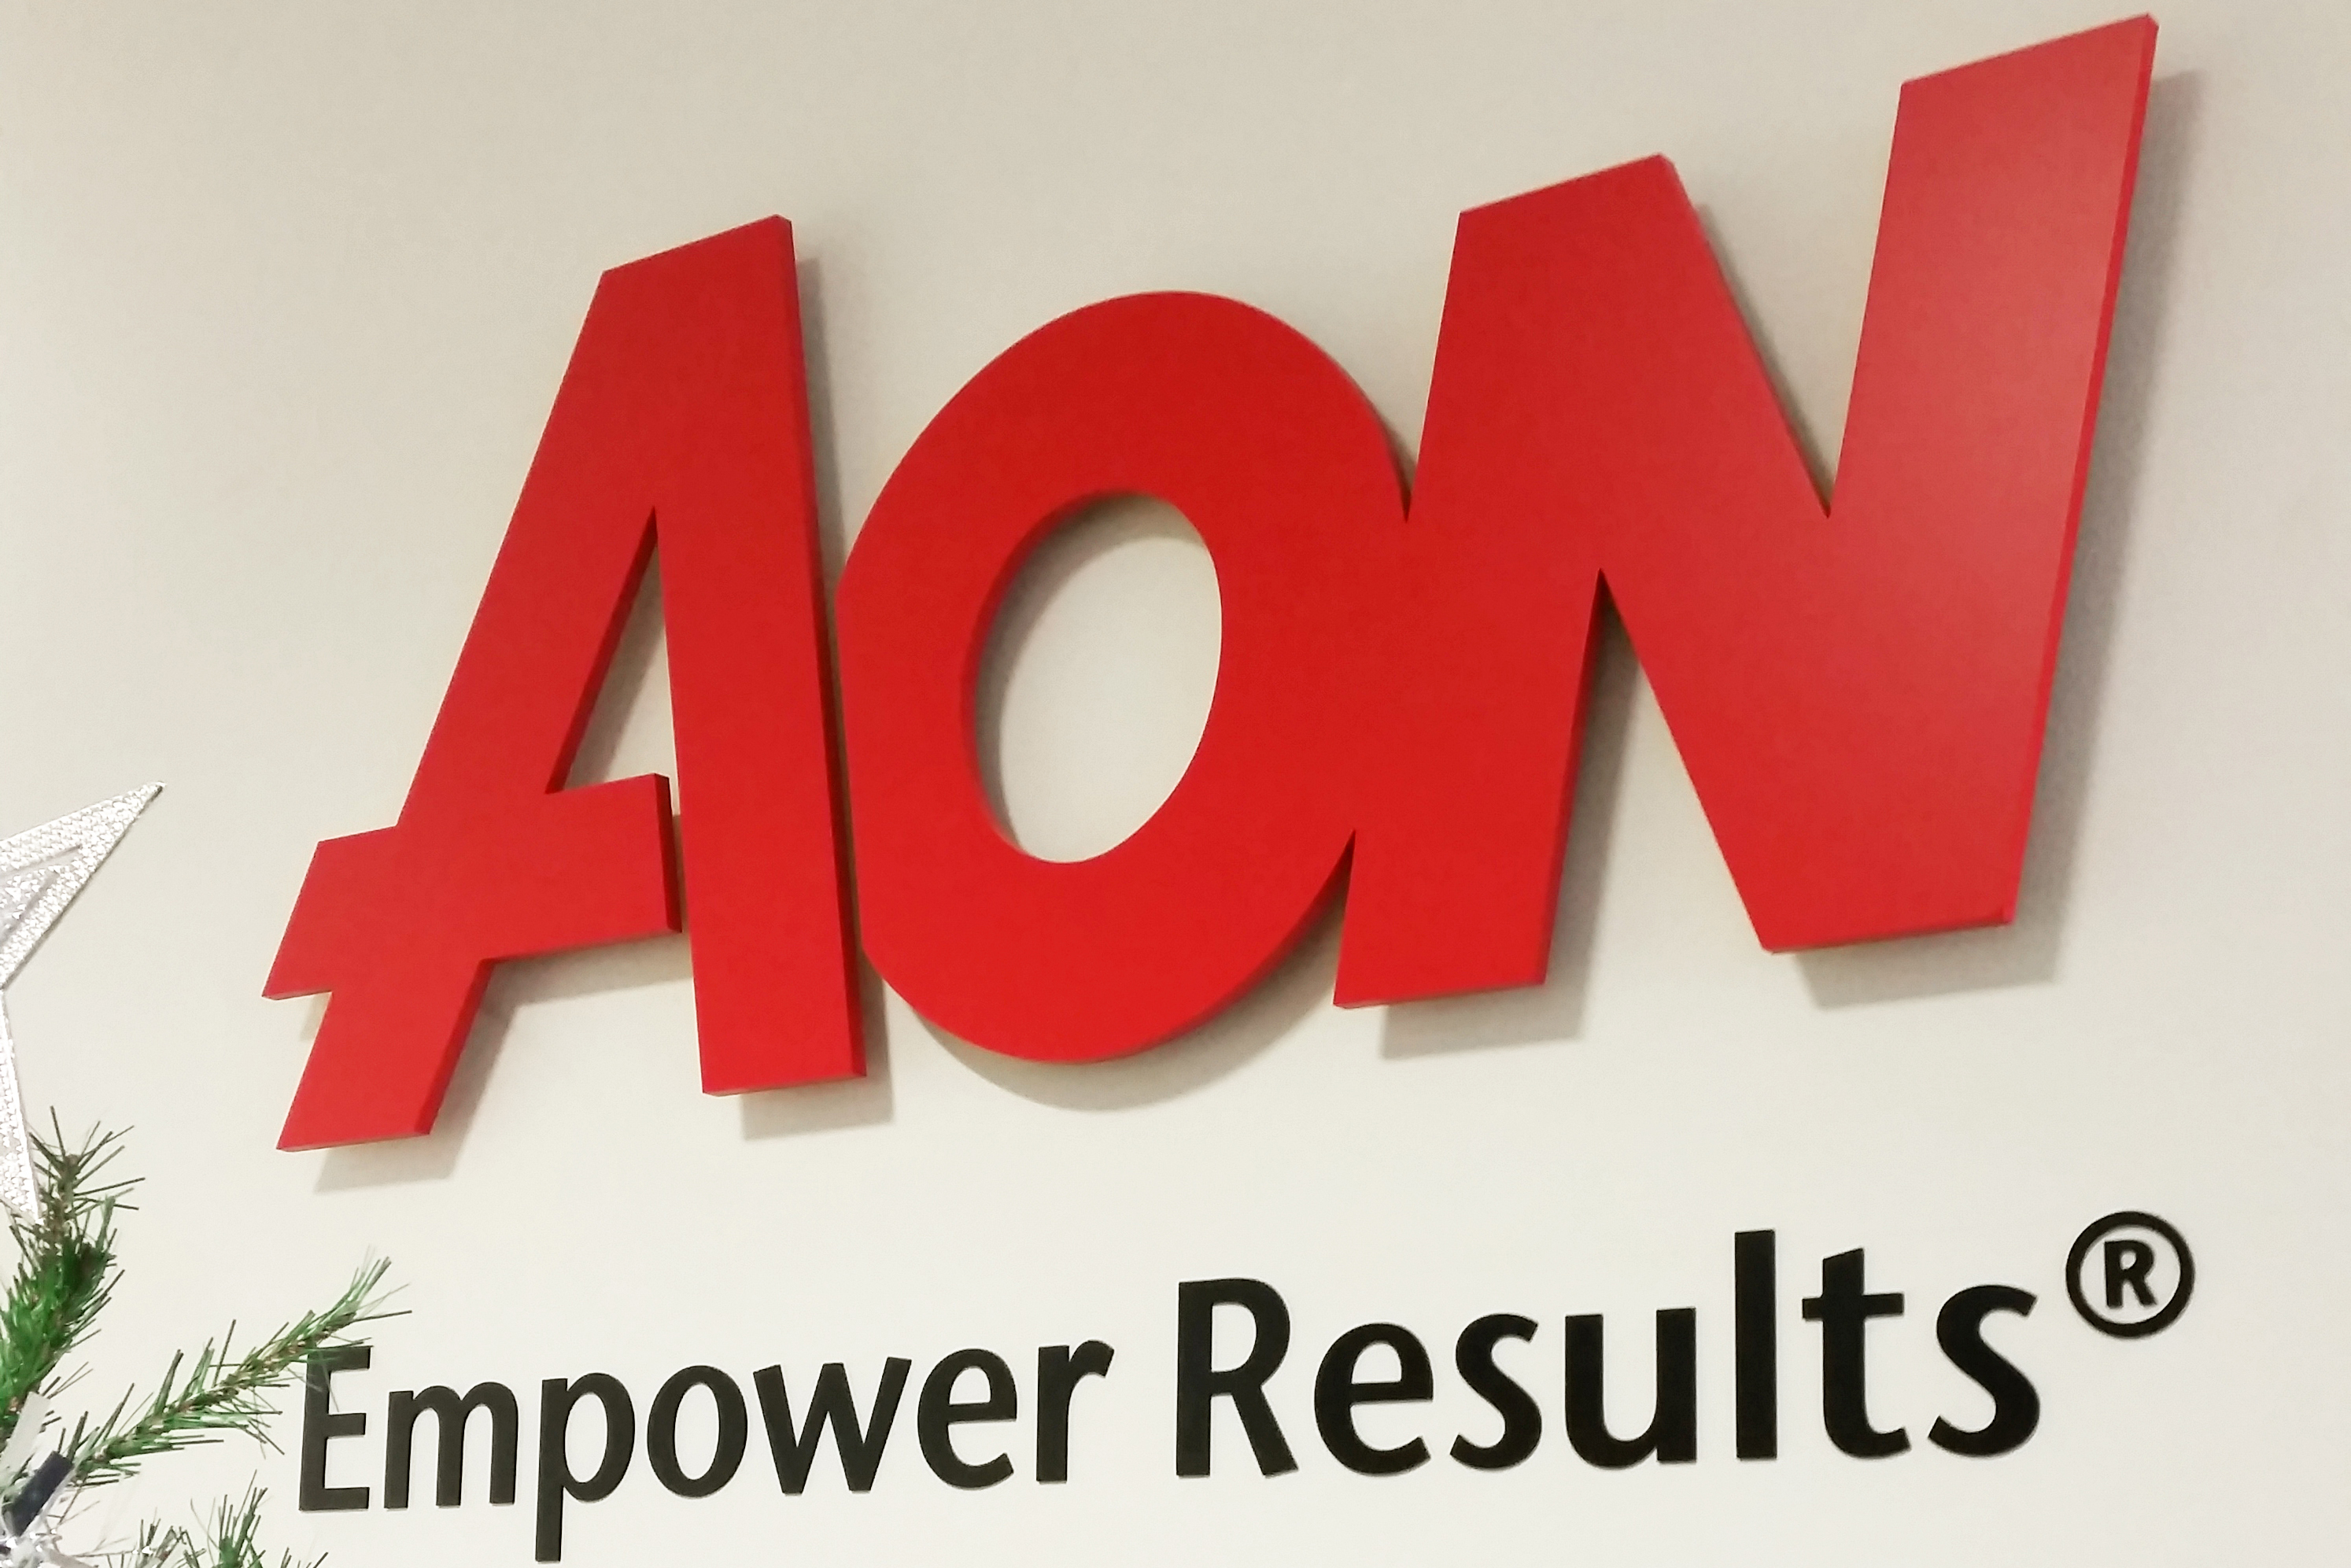 Aon to grade fund managers on ESG